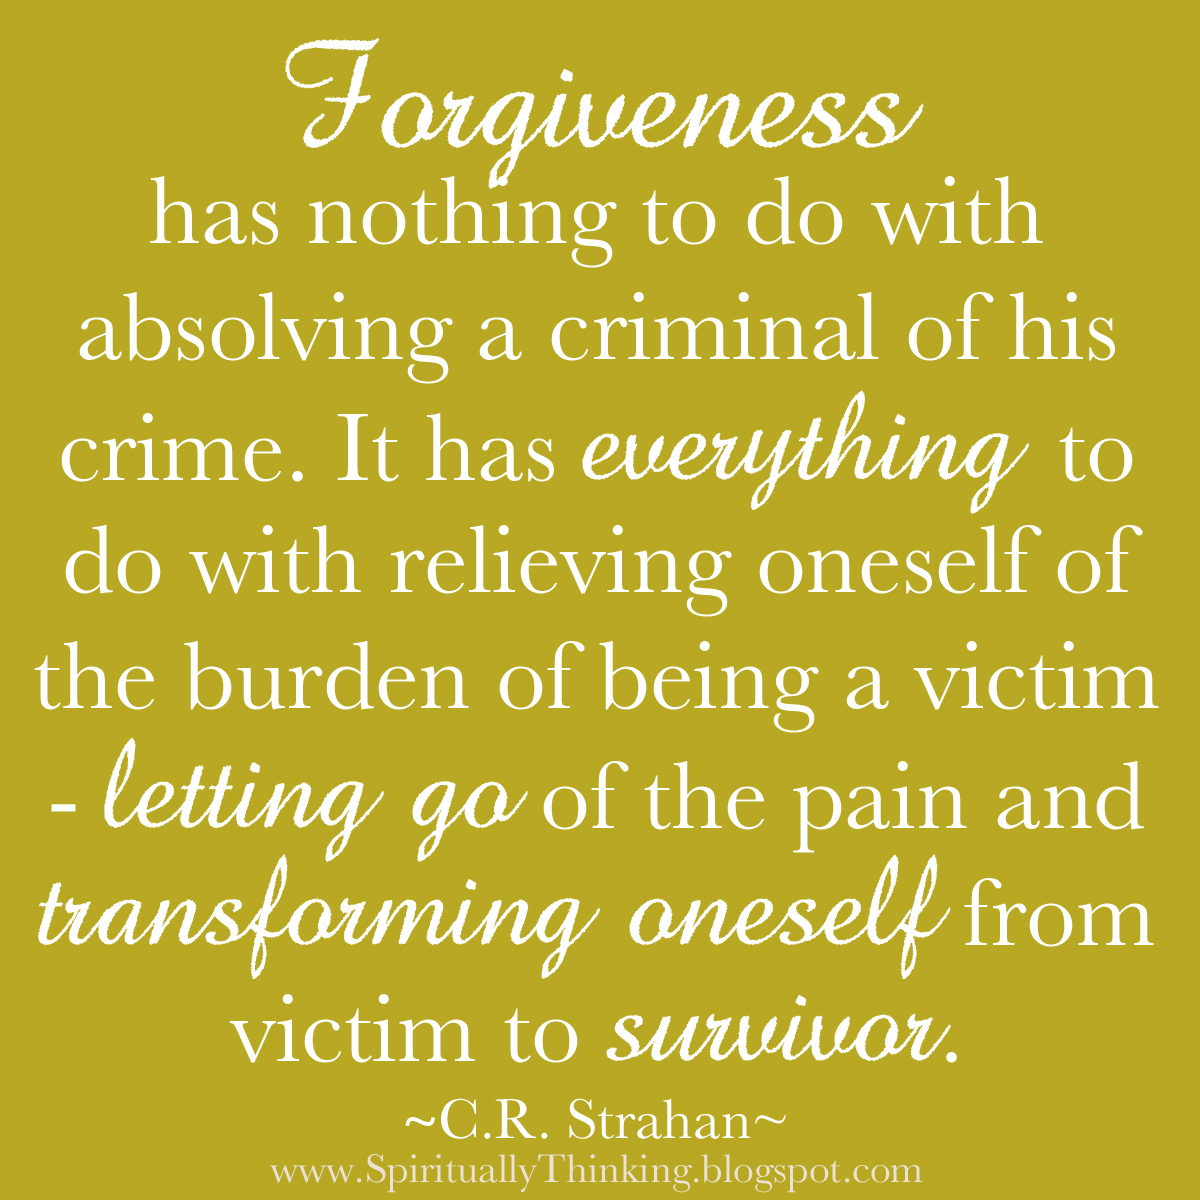 Family Forgiveness Quotes And Sayings Quotesgram